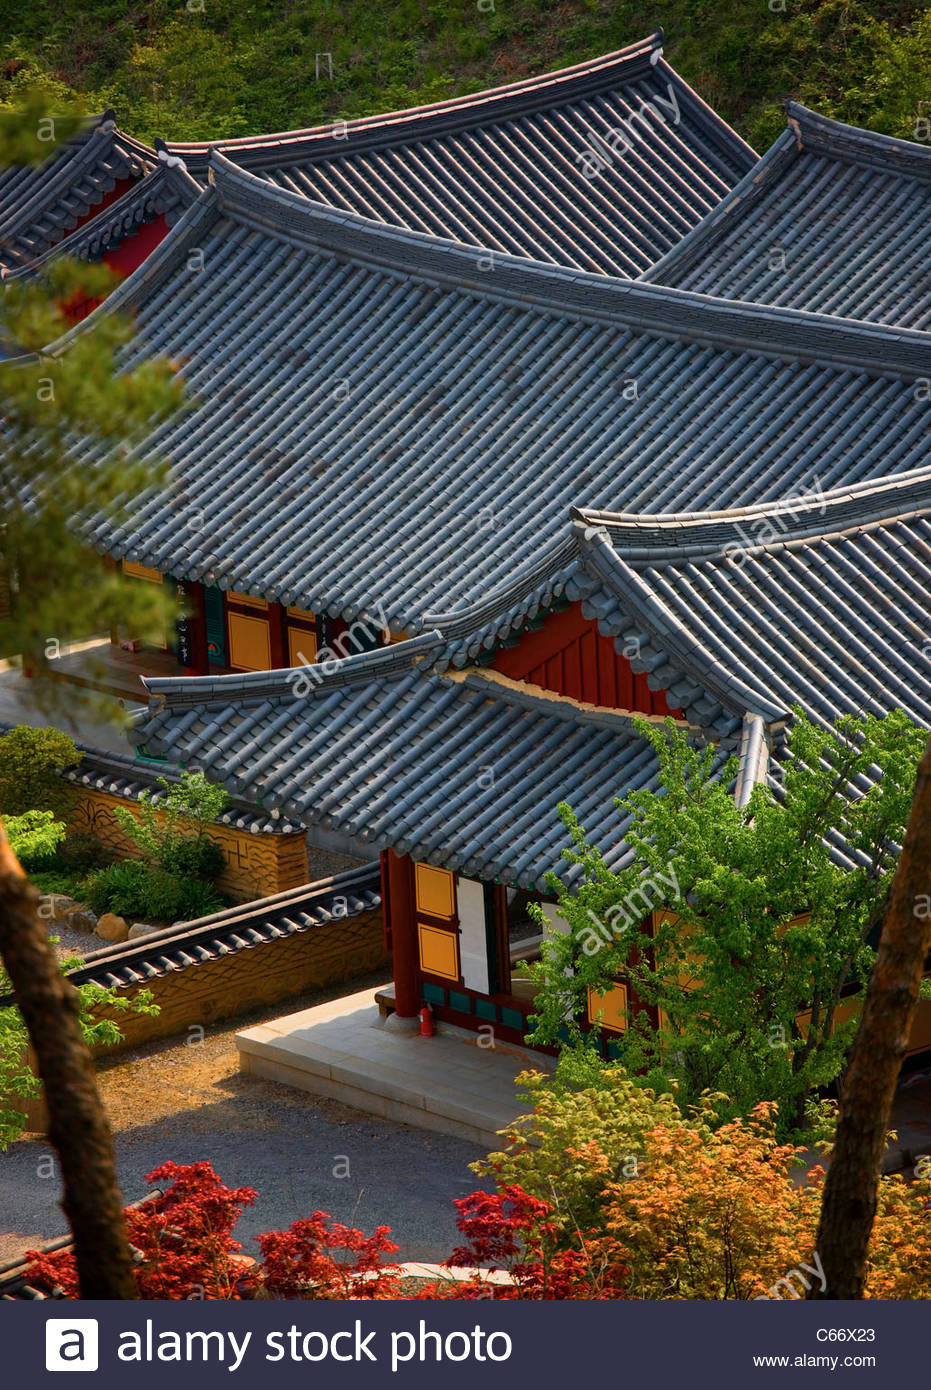 Temple roofs in South Korea - Stock Image